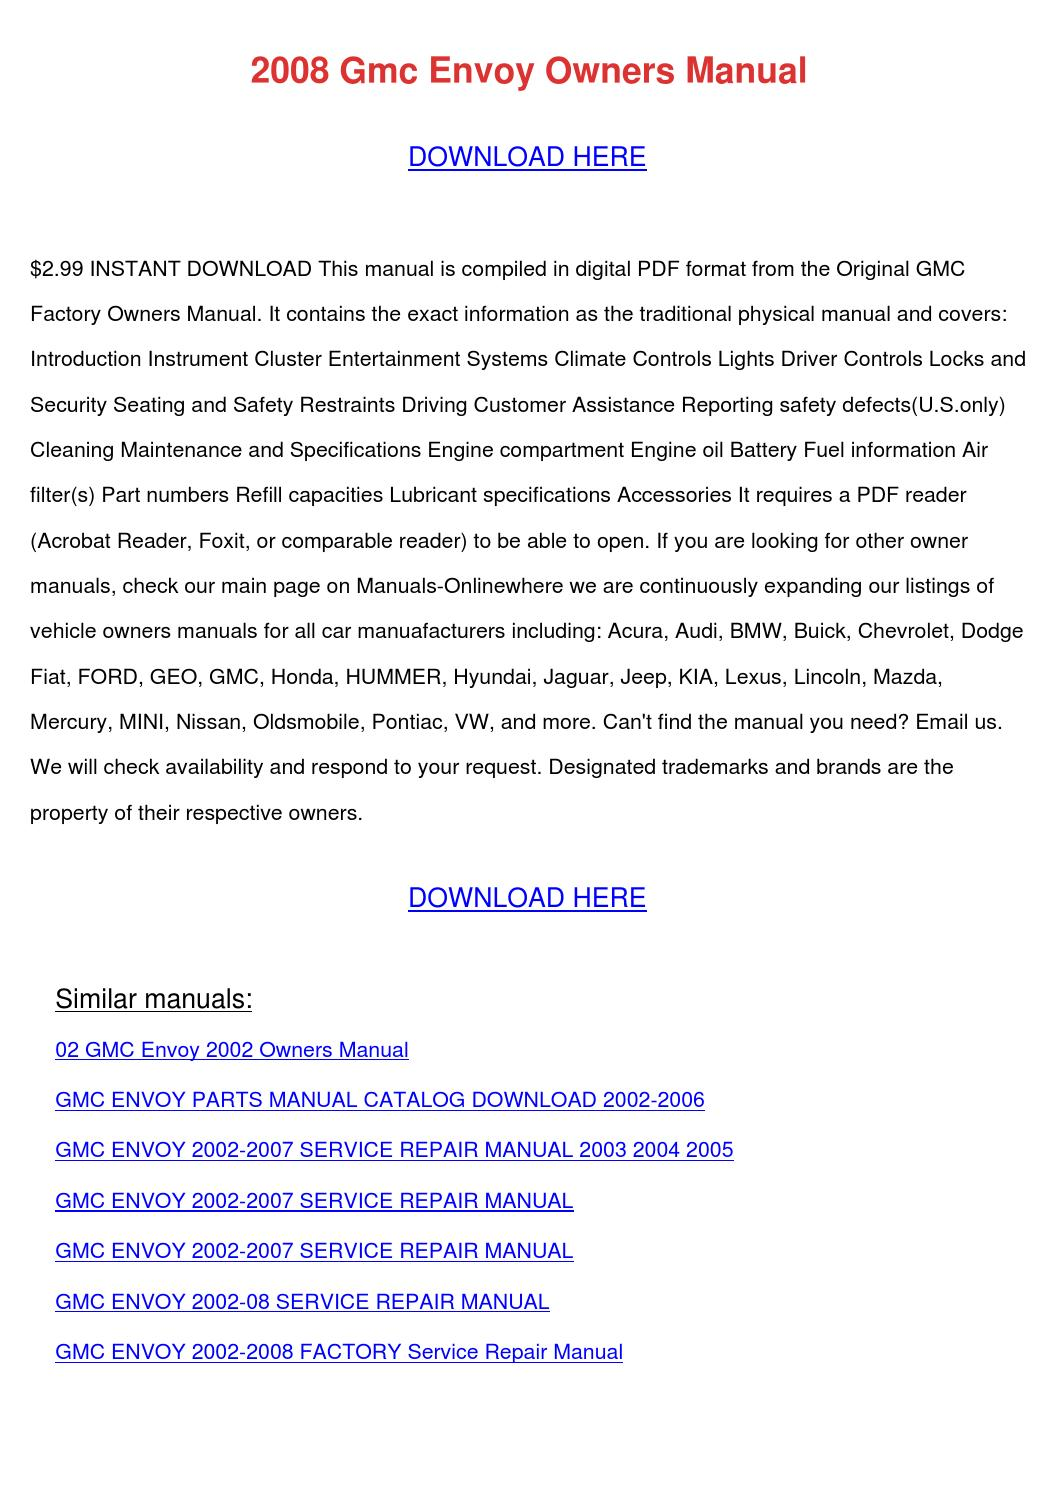 2008 Gmc Envoy Owners Manual by TheresaShaw - issuu